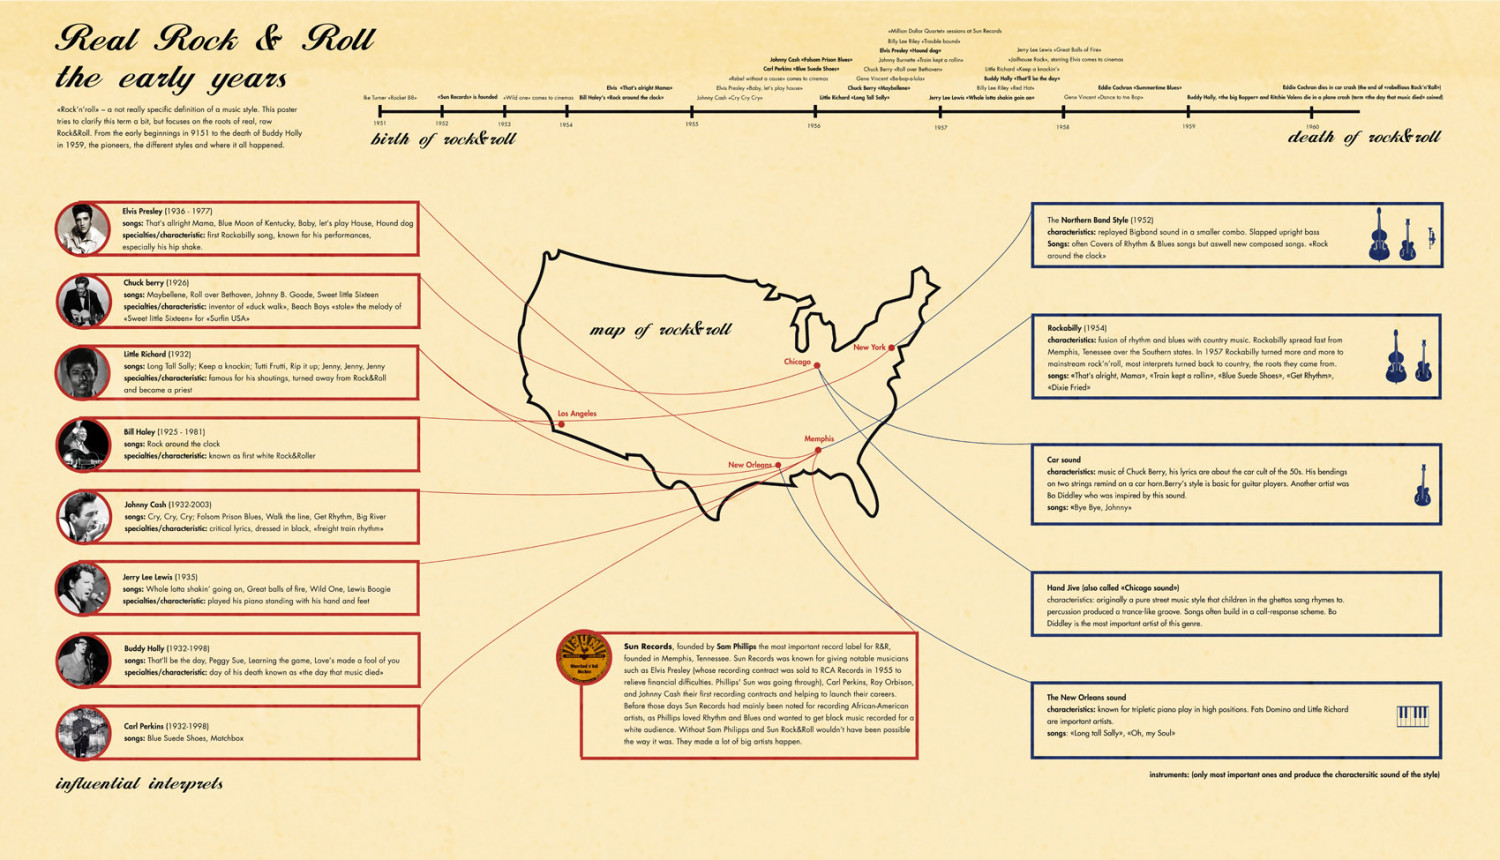 history of rock'n'roll Infographic